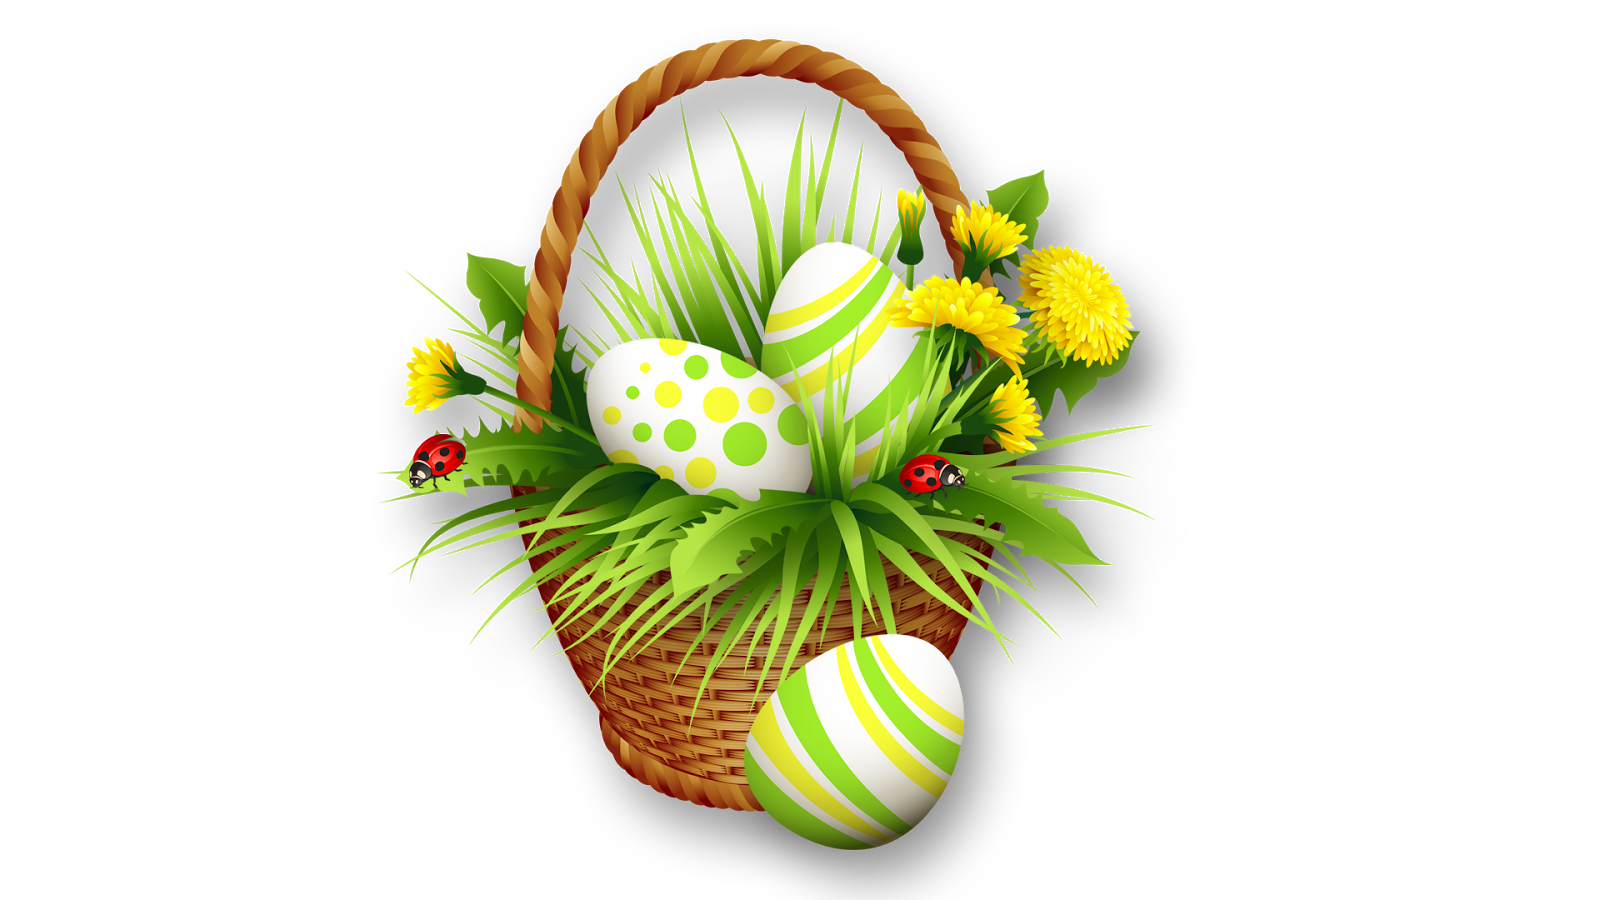 Download PNG Image - Easter Basket Bunny Png Clipart - Easter HD PNG